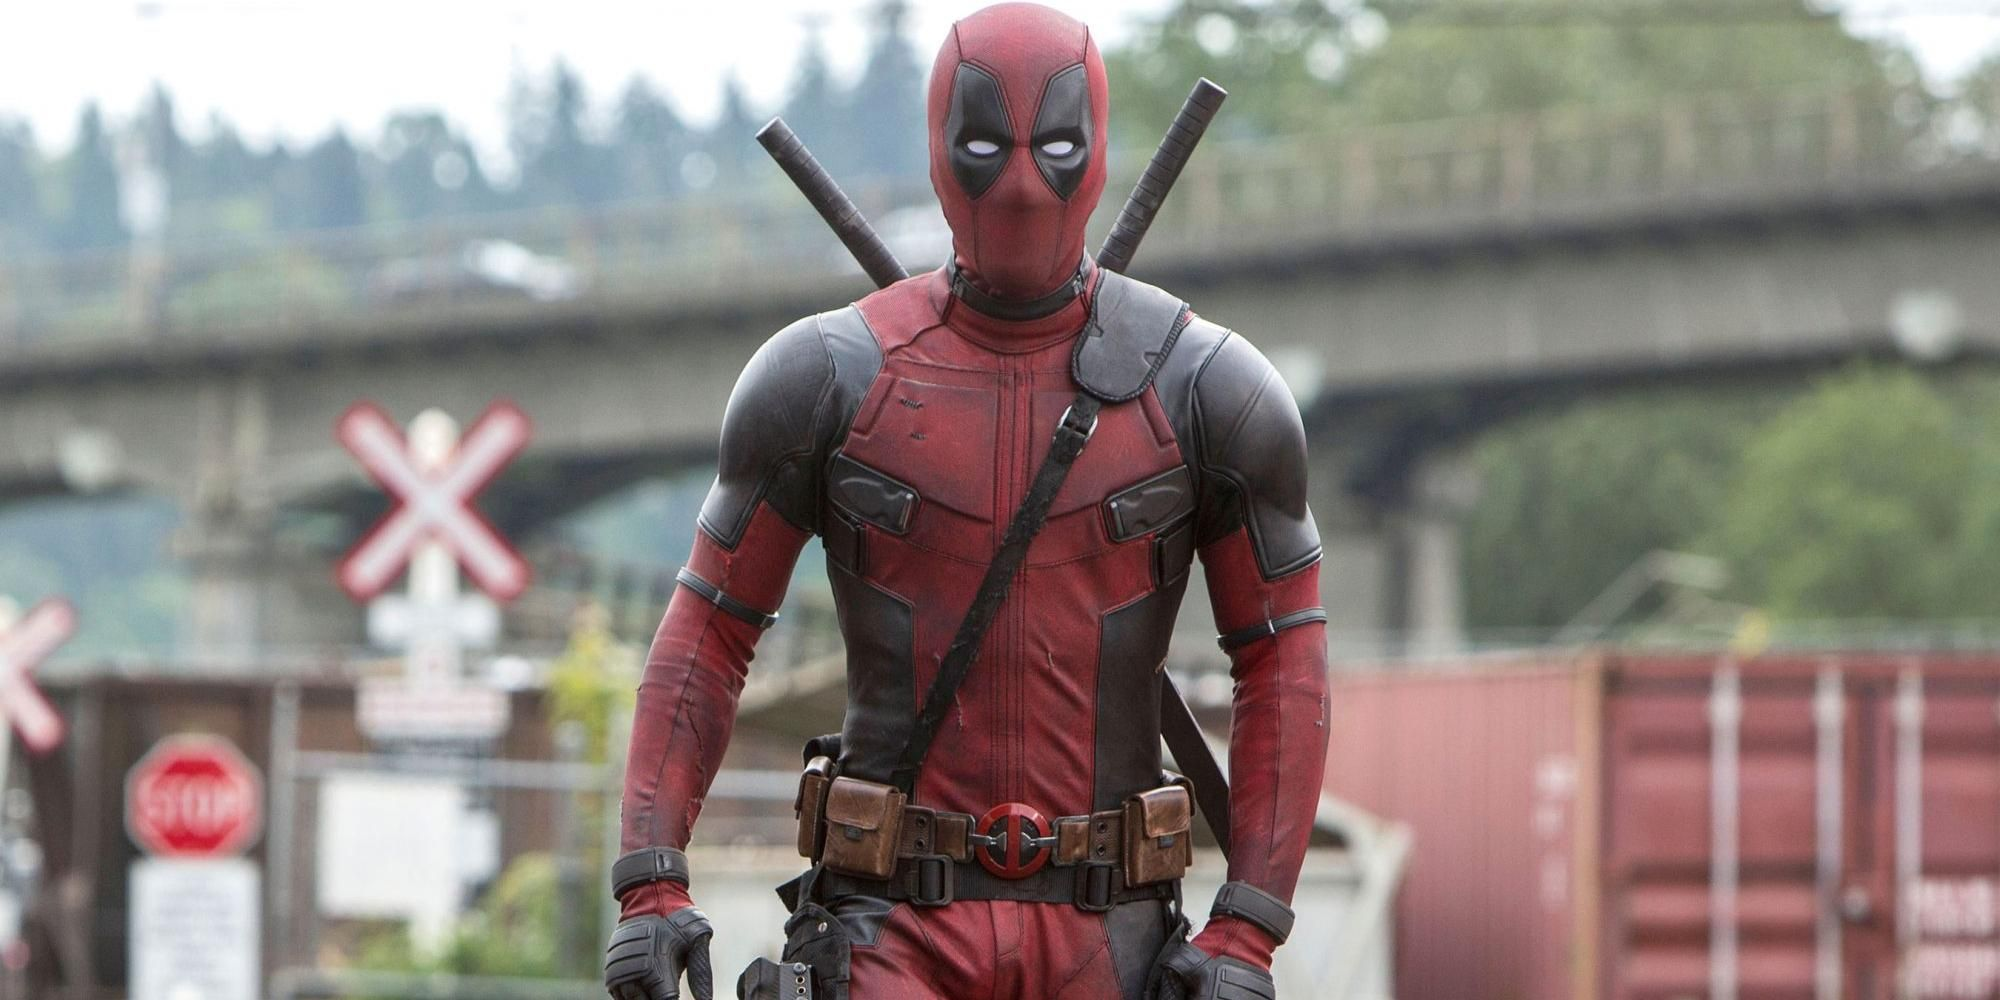 Deadpool 3 Confirmed To Be An MCU Movie & R-Rated | Screen Rant